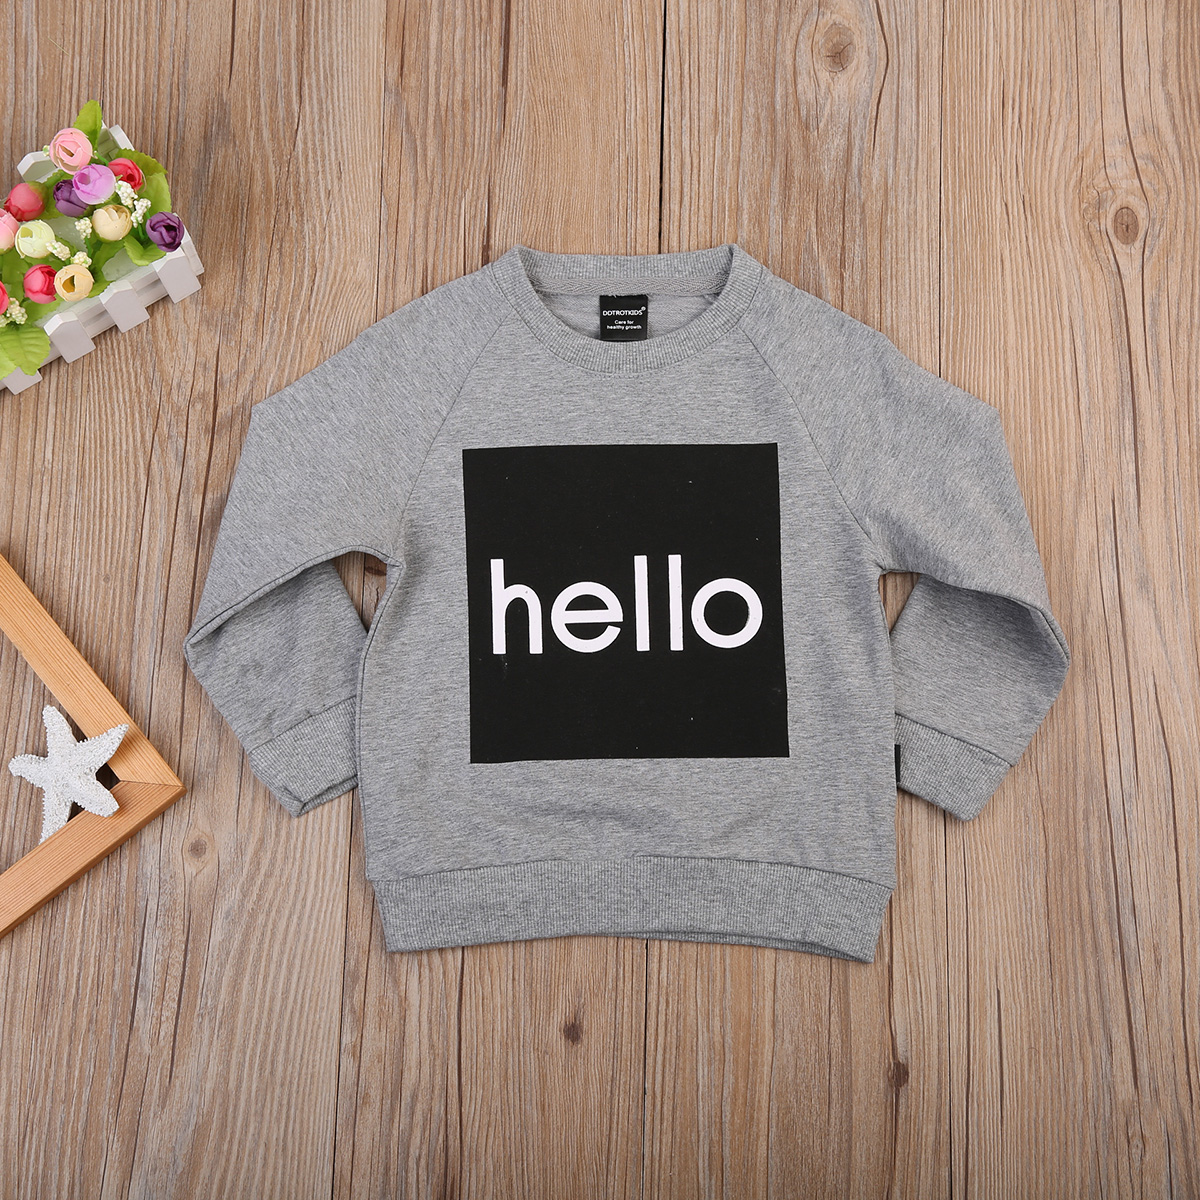 Autumn-Winter-Toddler-Long-Sleeve-Baby-Boy-Girl-Pullover-Warm-Hoodies-Sweatshirt-Clothes-Tops-3